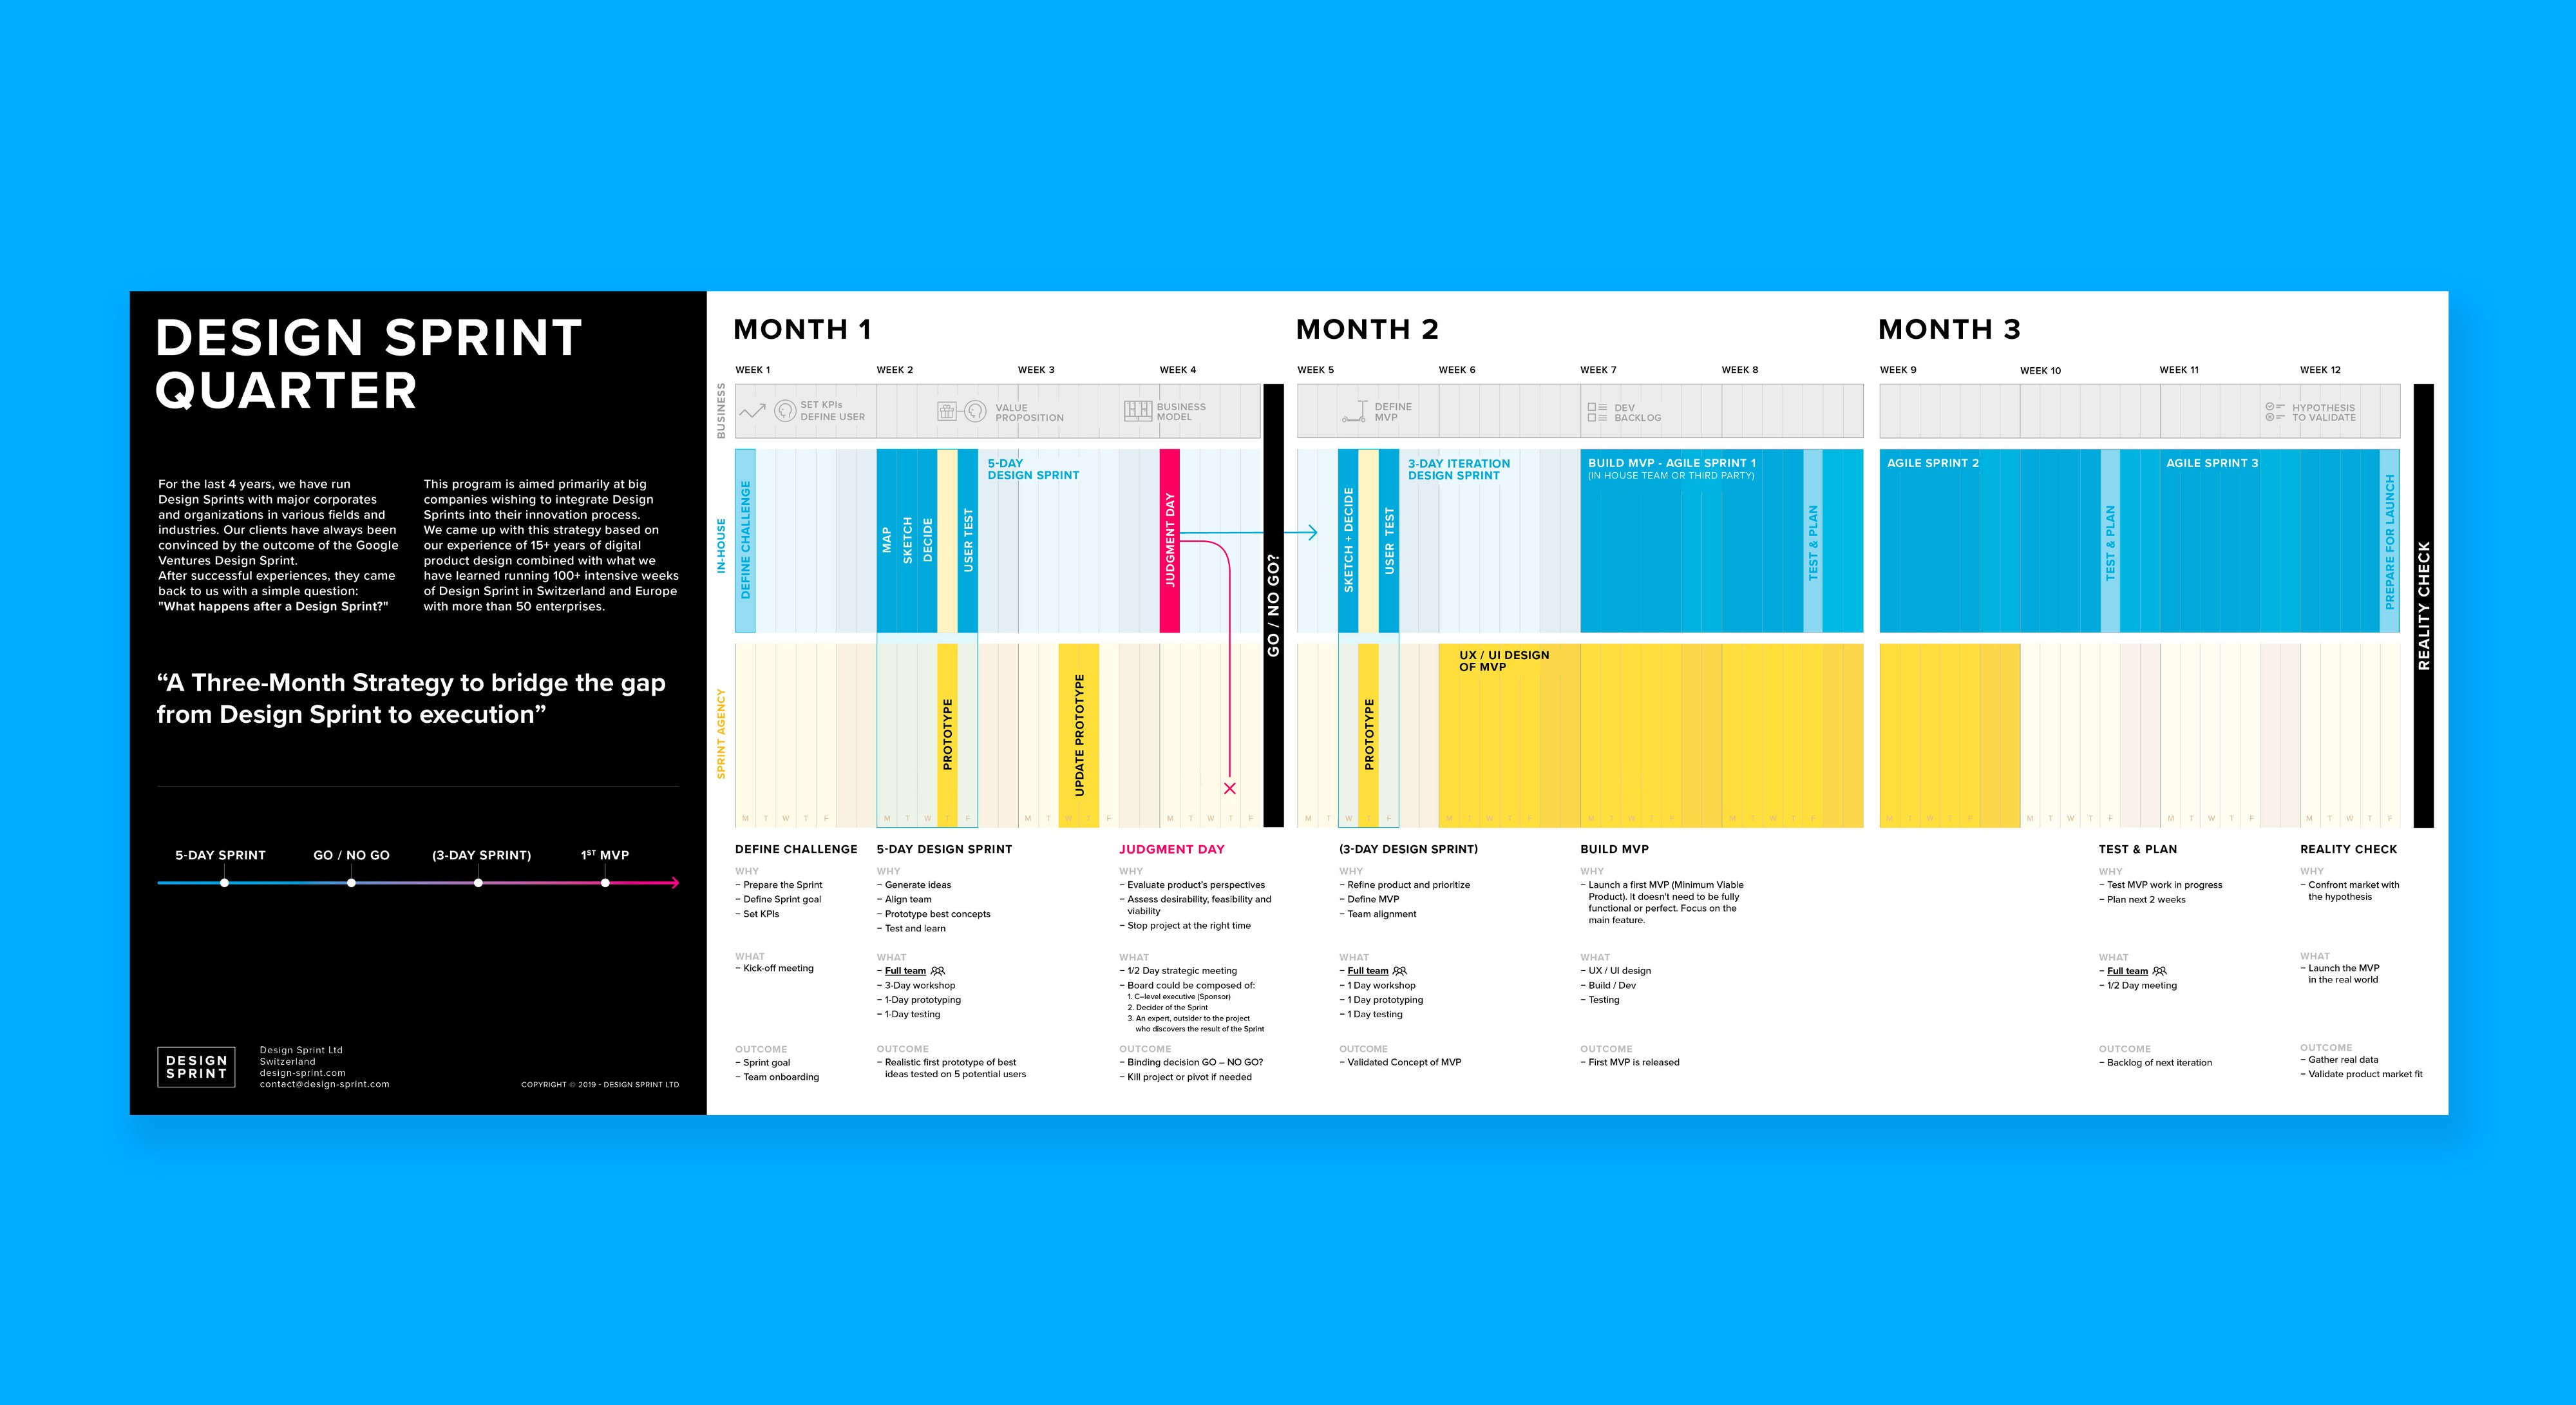 The Design Sprint Quarter Timeline